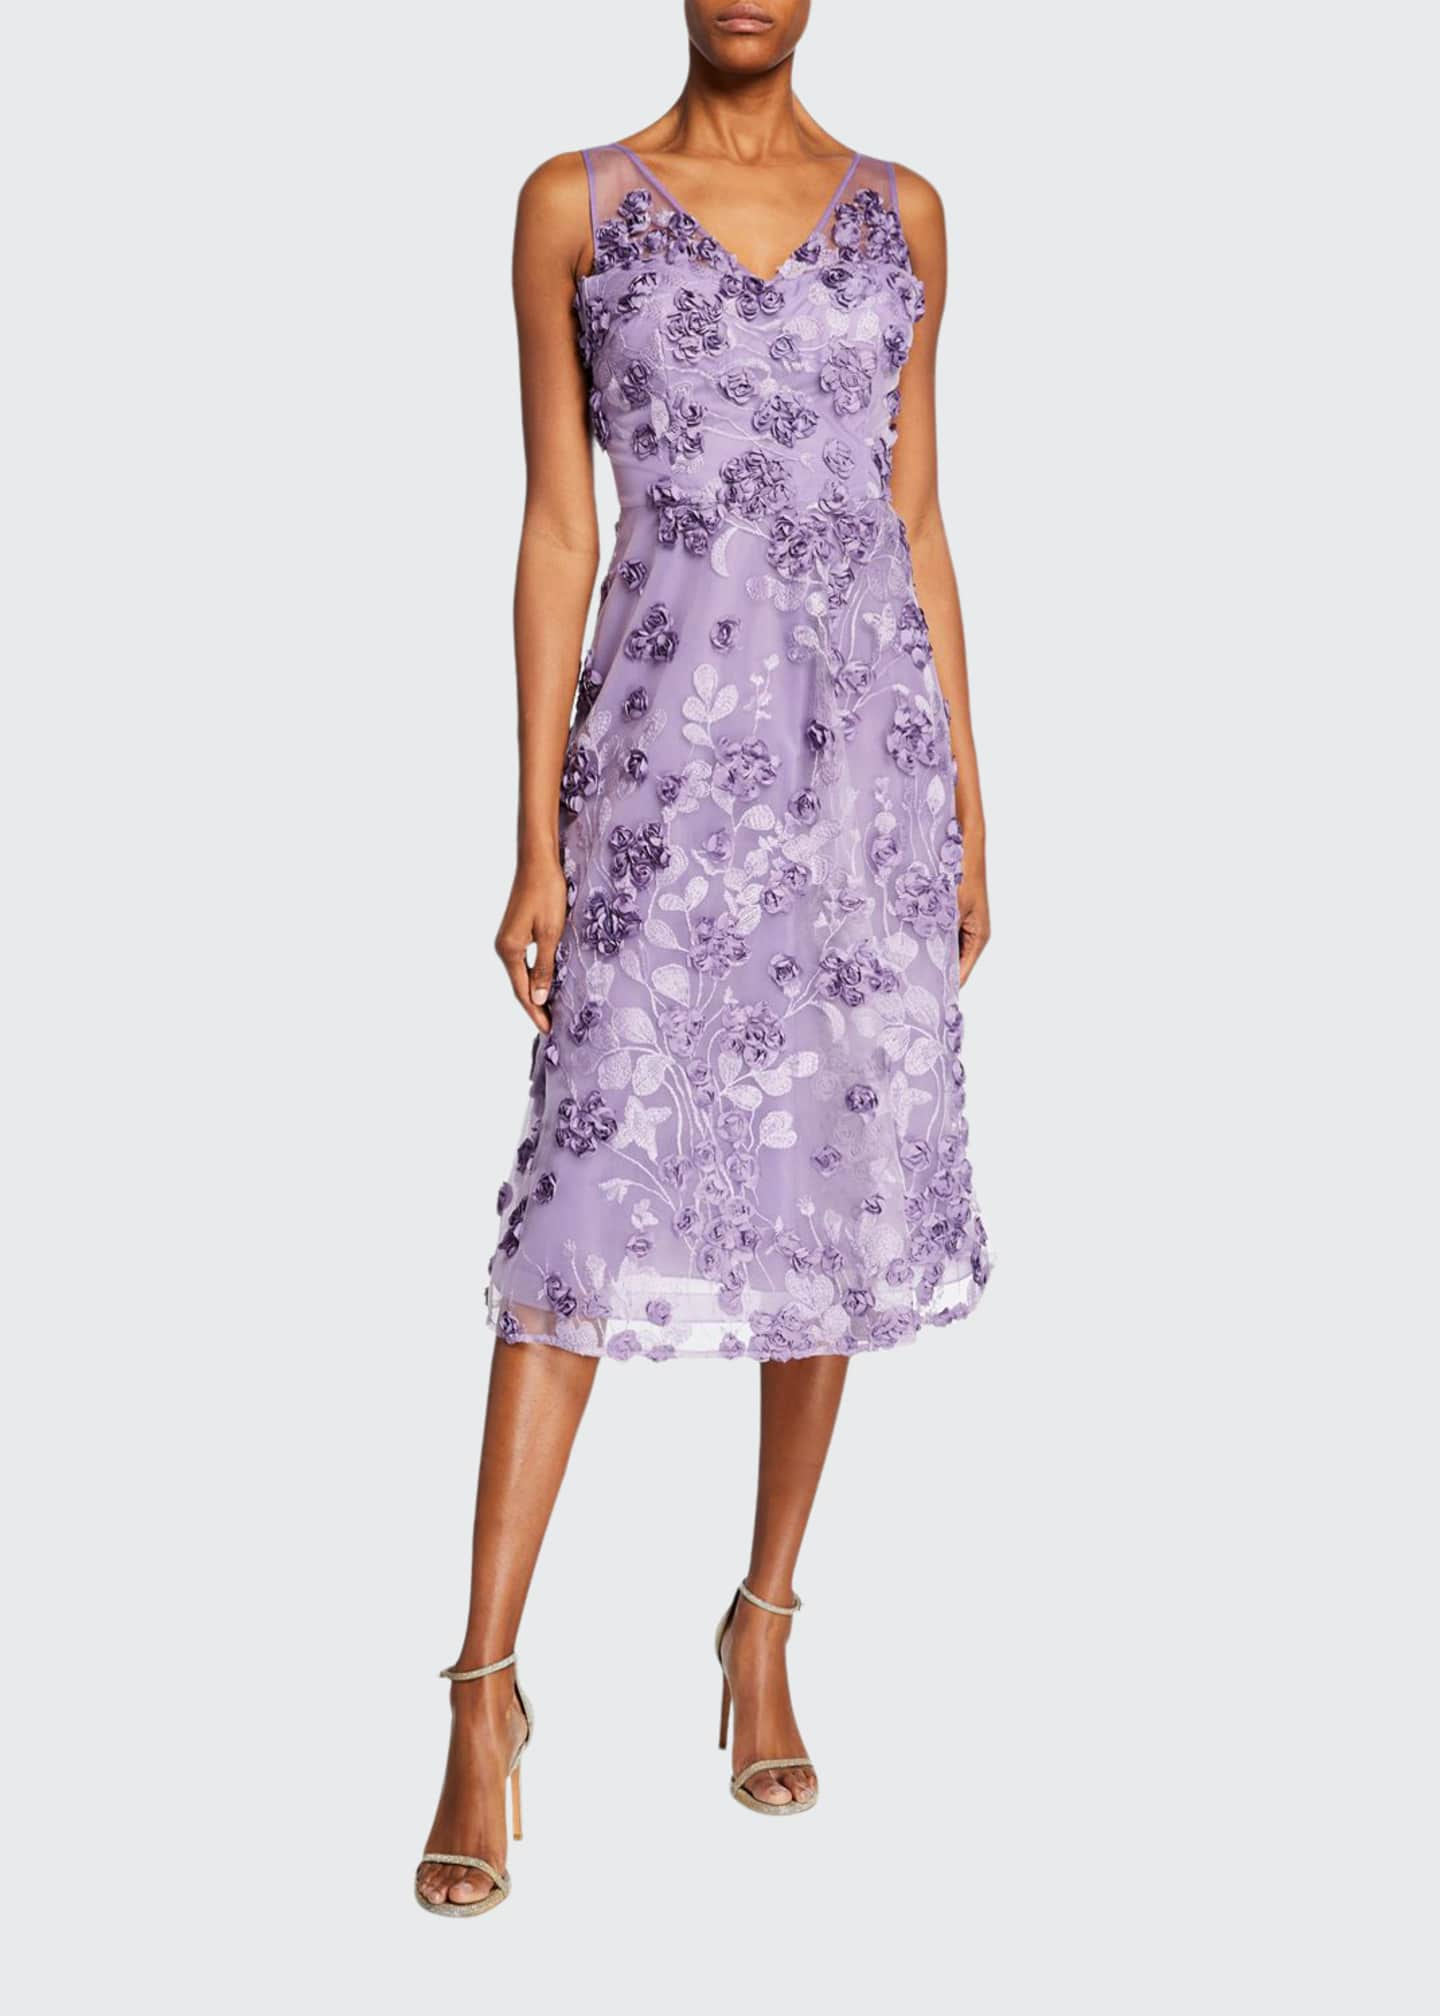 Rickie Freeman for Teri Jon Tulle Tea-Length Dress